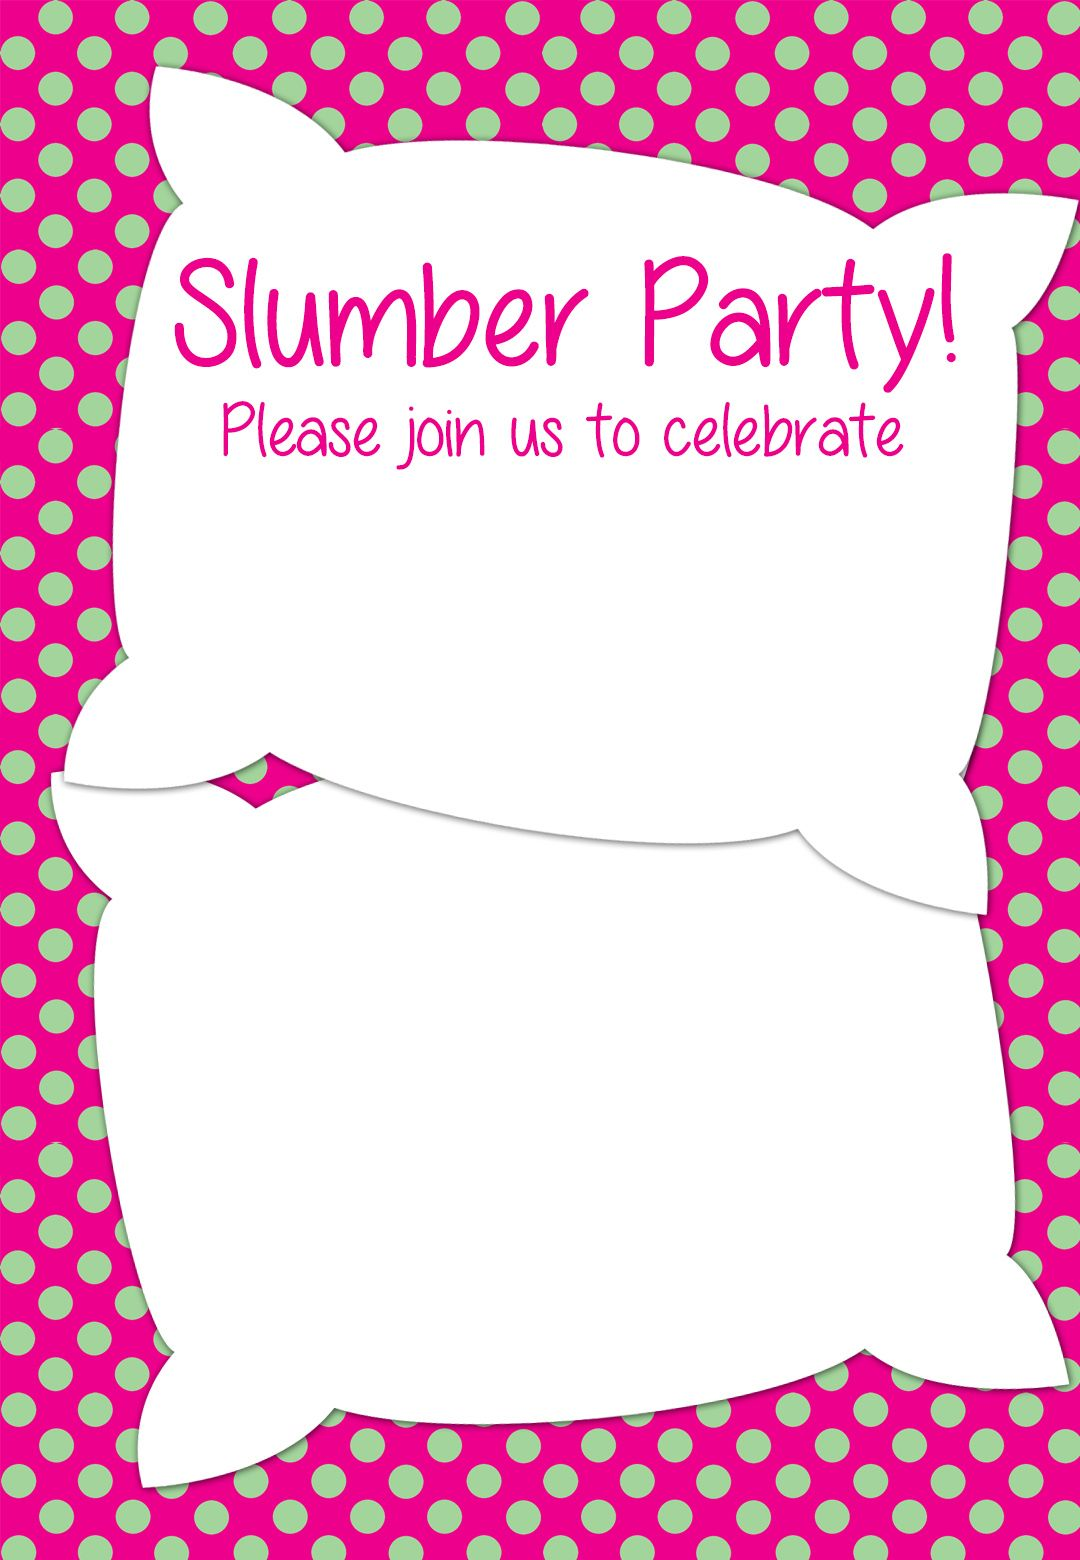 Free Printable Slumber Party Invitation | Party ideas | Pinterest ...